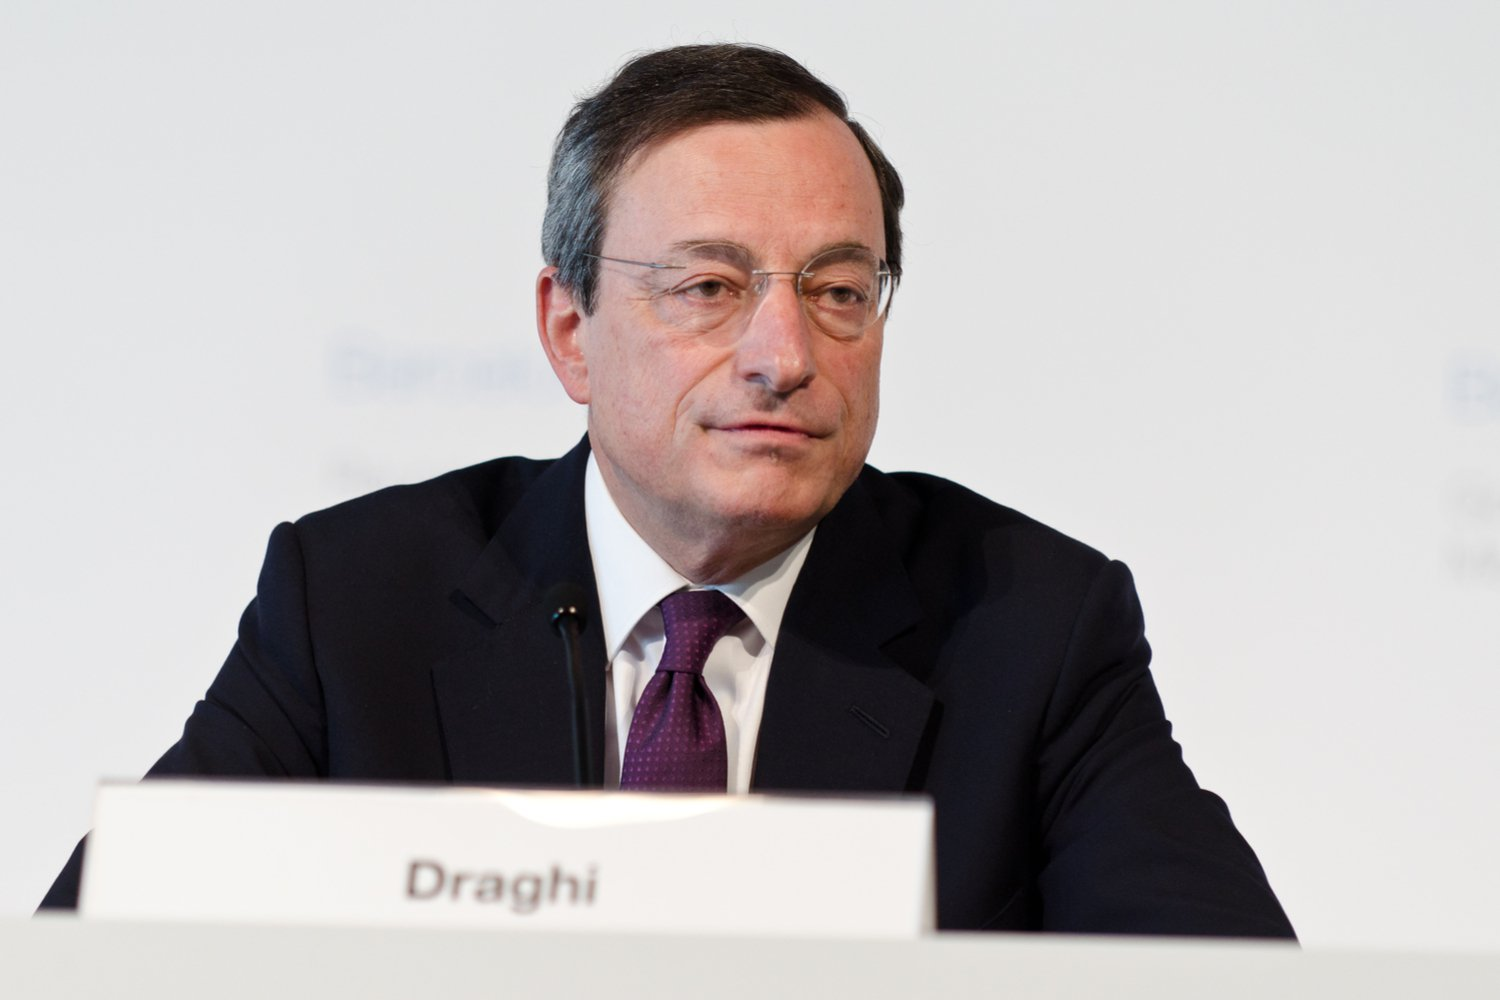 ECB President Draghi: Cryptocurrency Impact Still 'Limited'